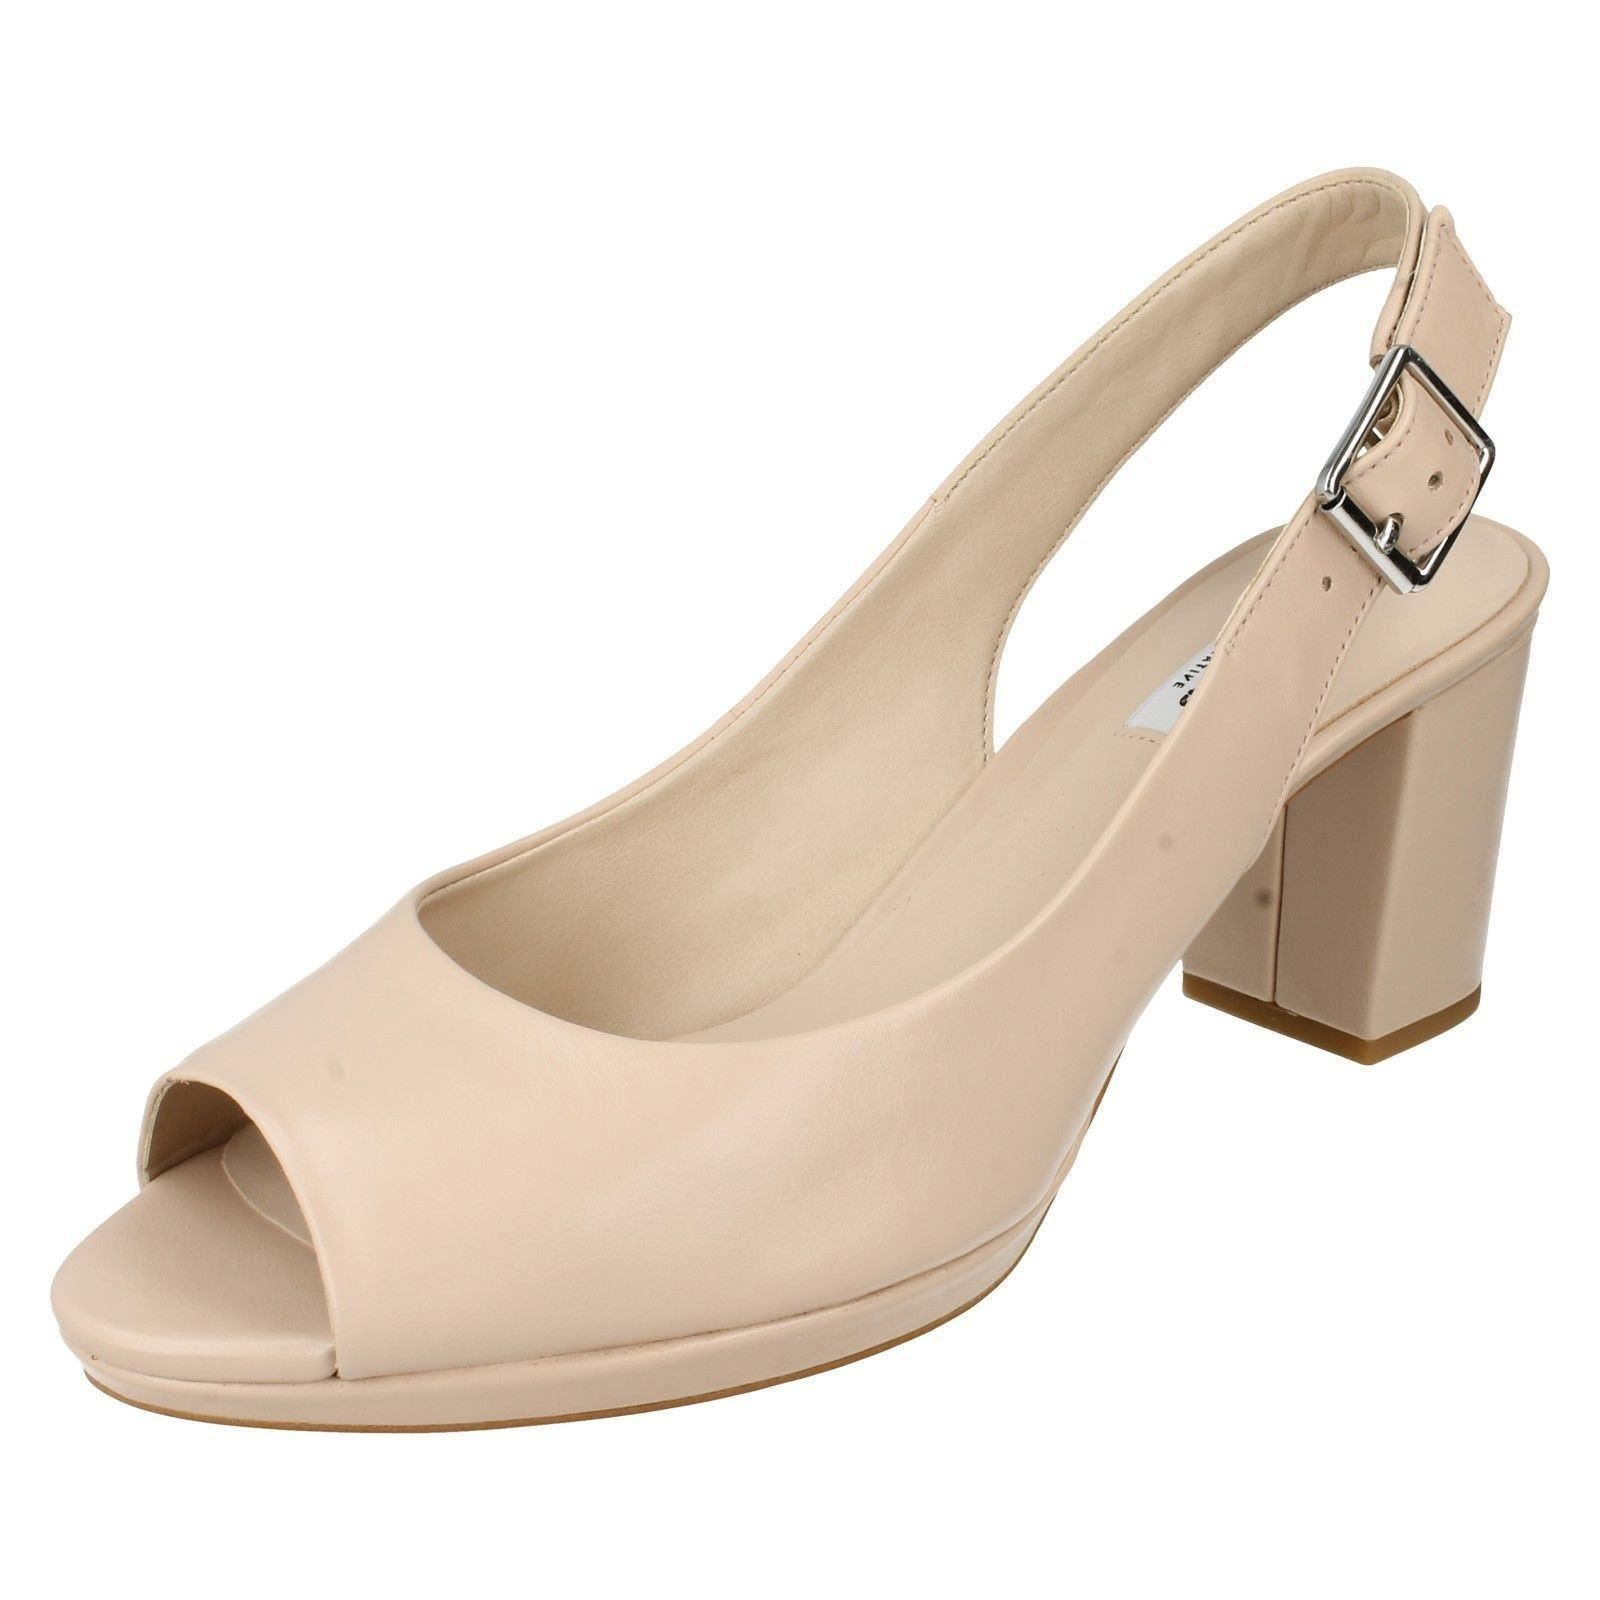 Womens sandals uk - Picture 2 Of 19